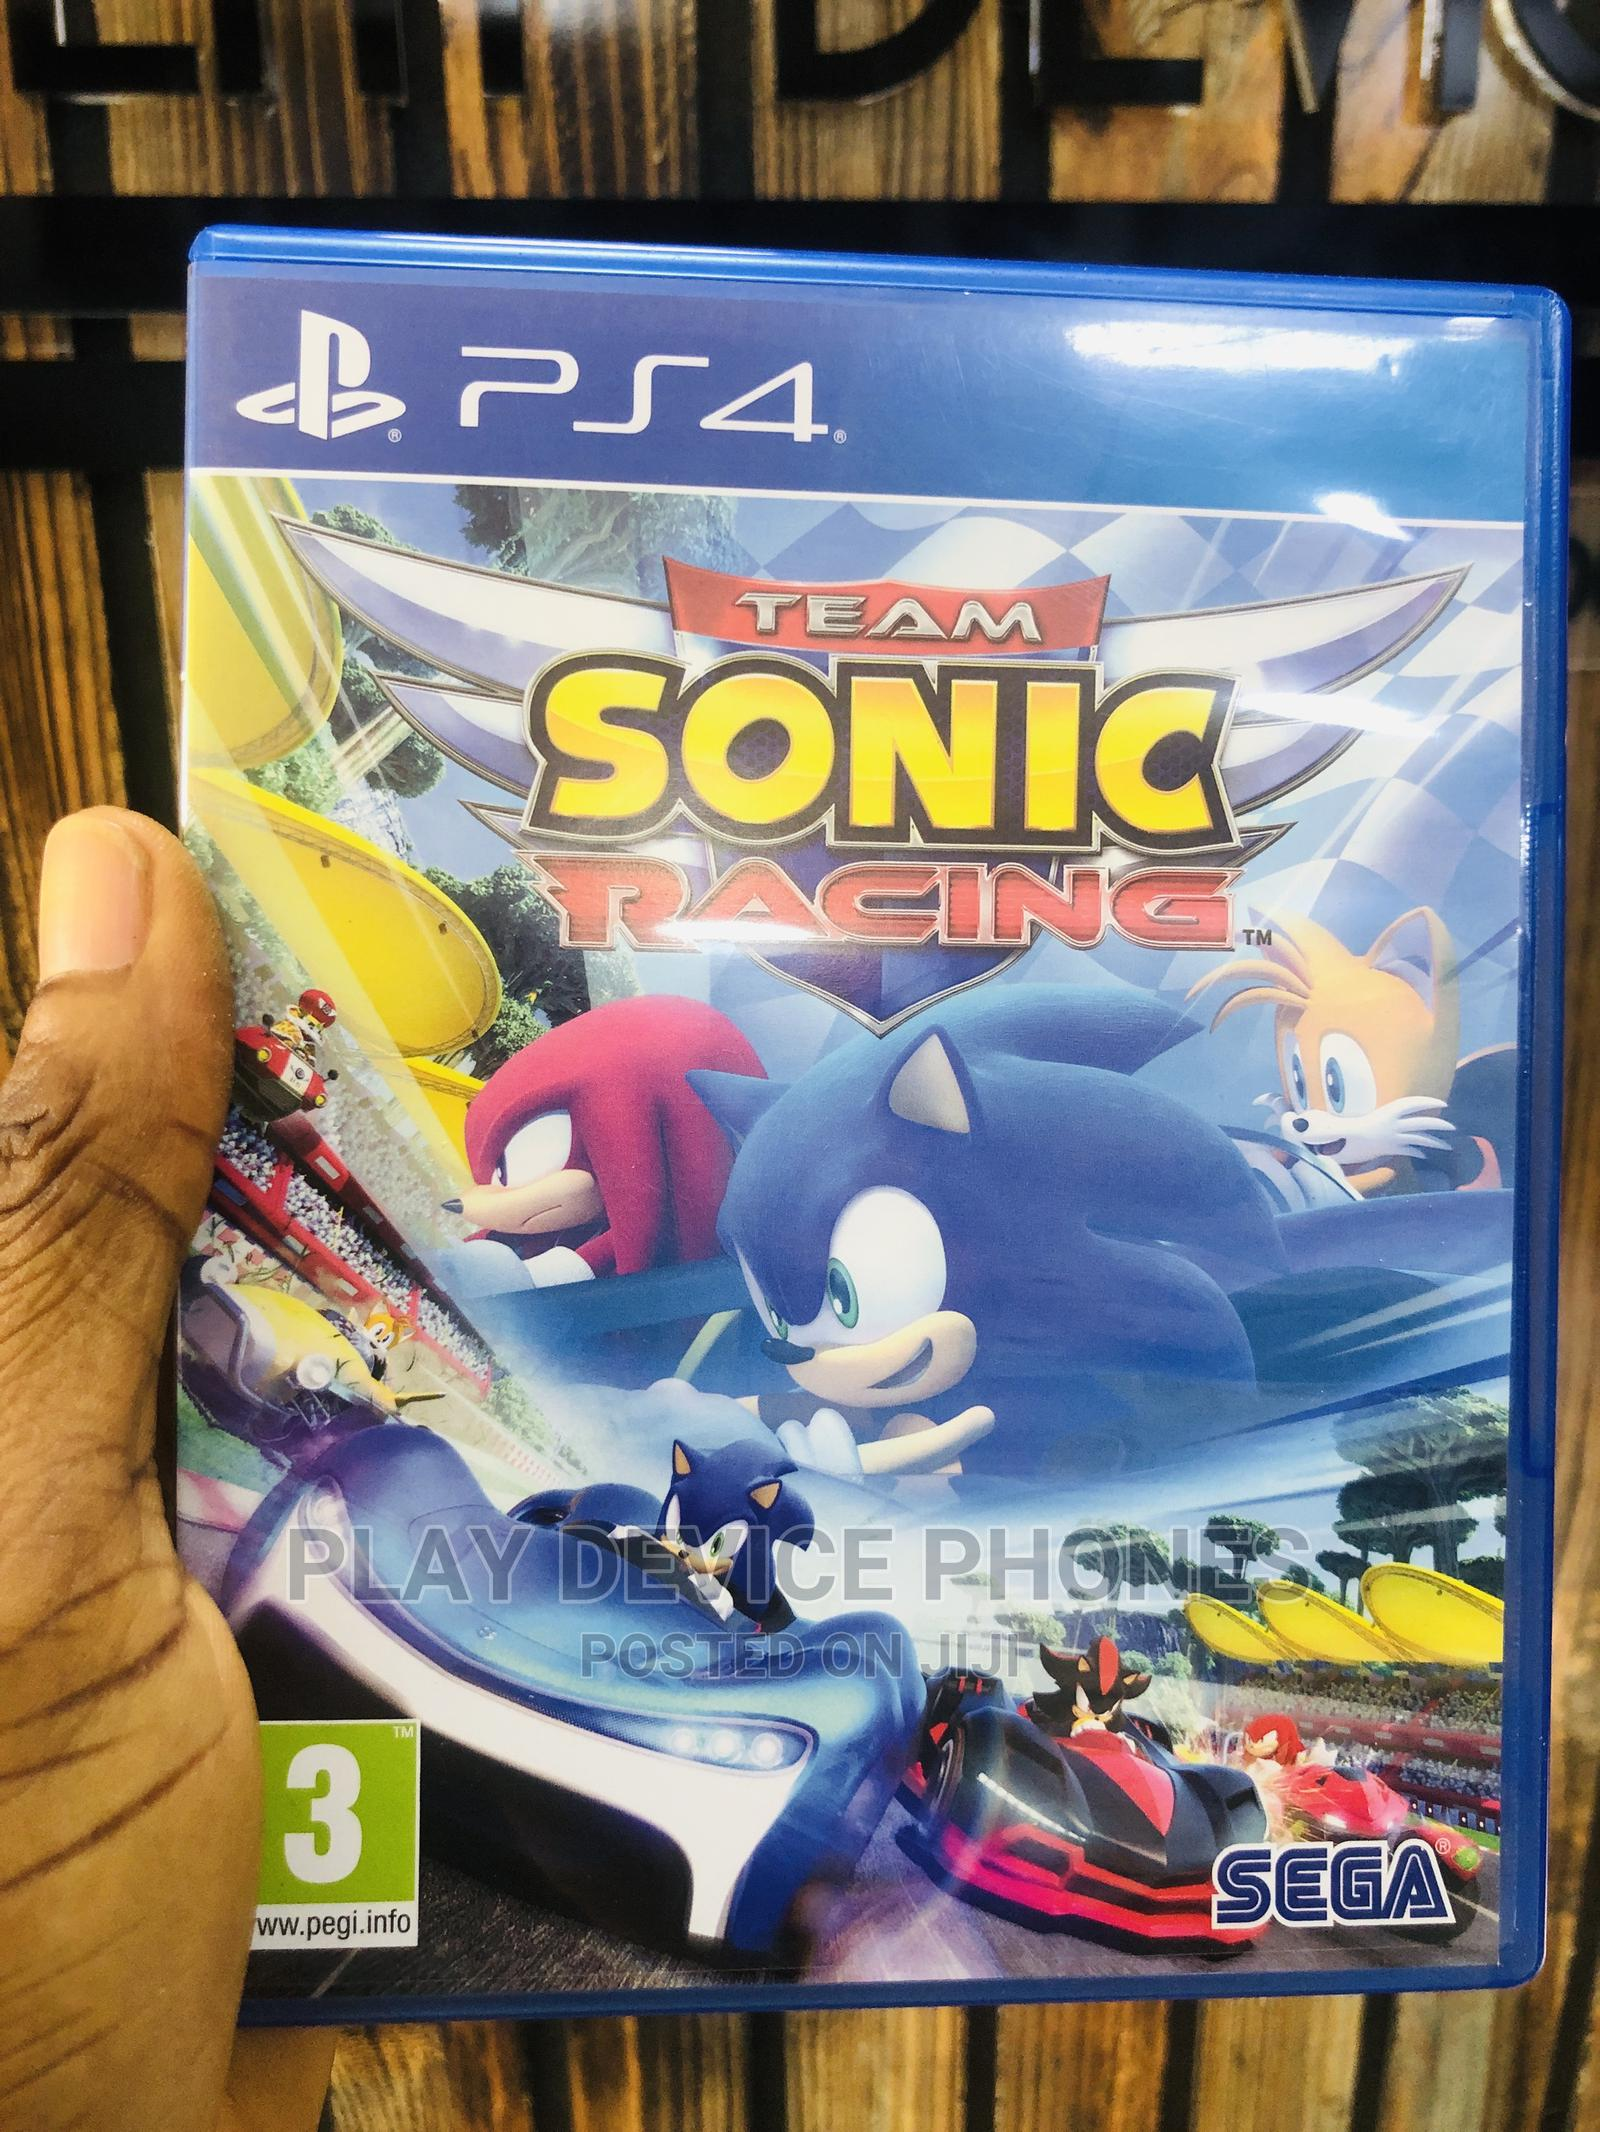 Sonic Racing Video Game for Ps 4